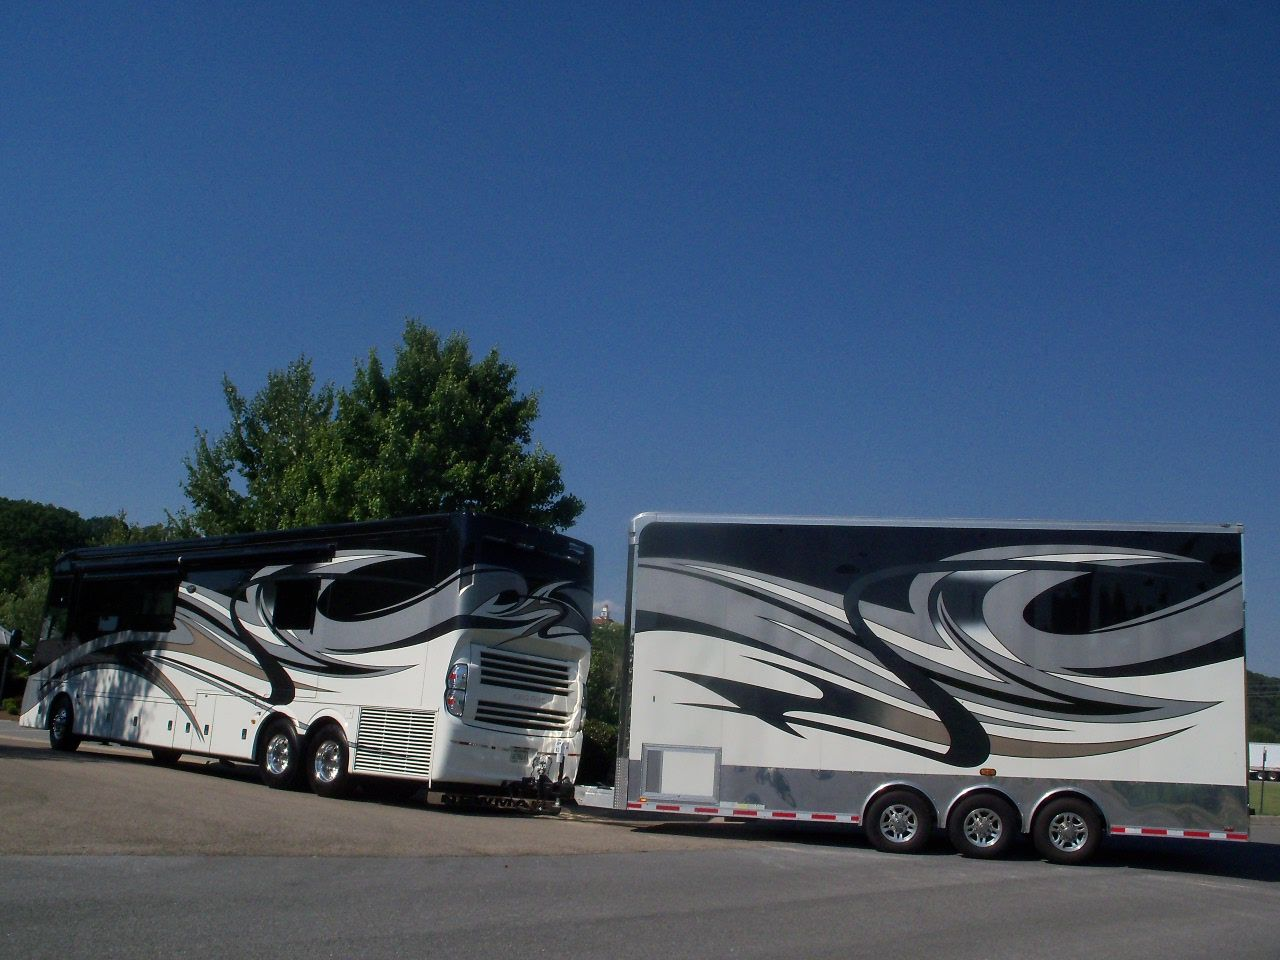 Denning double decker for sale - Newmar King Aire With Matching Double Decker Trailer